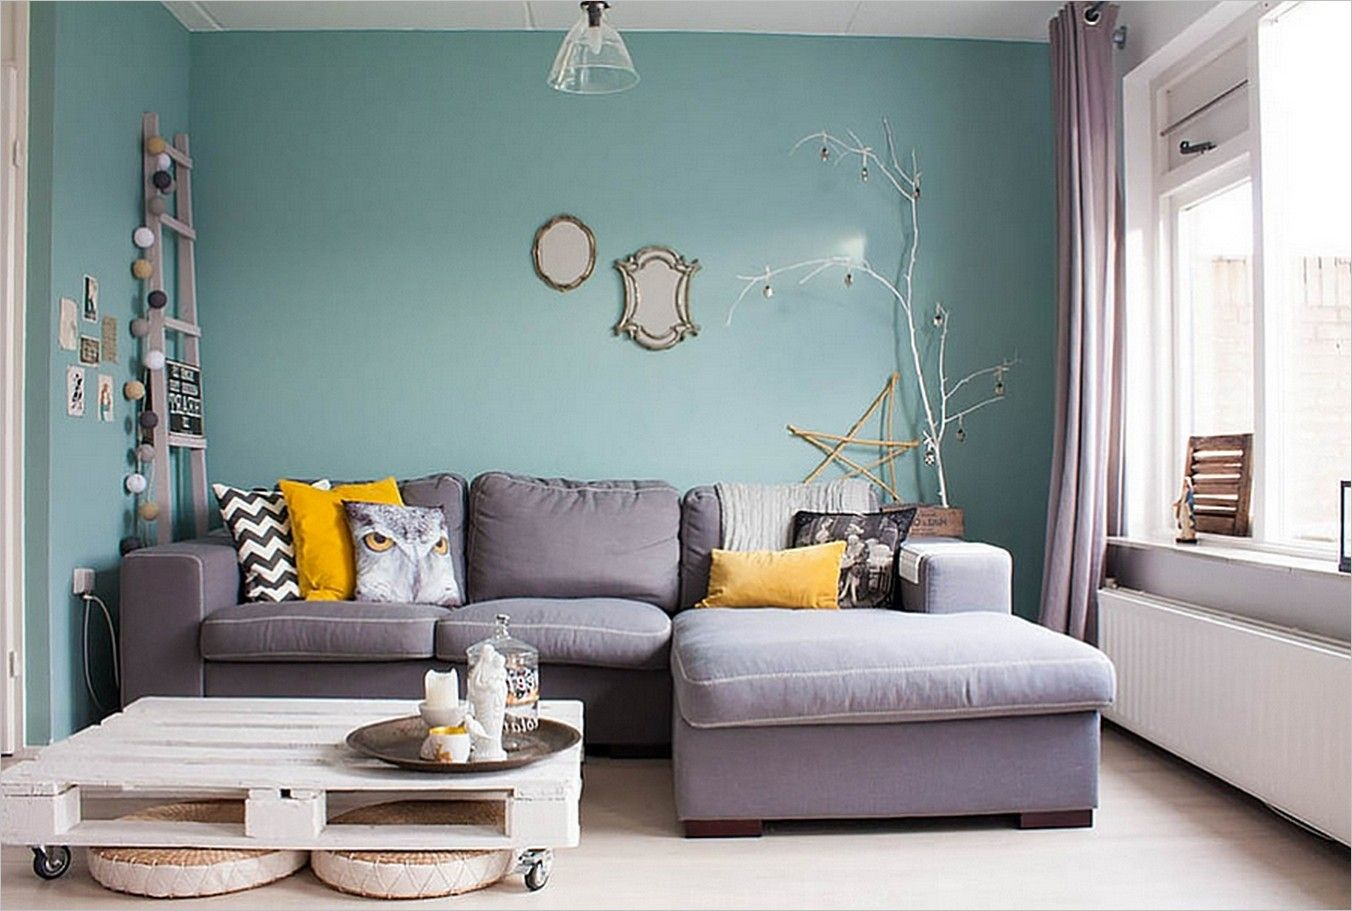 lovely living room interior desig with blue wall paint. Black Bedroom Furniture Sets. Home Design Ideas